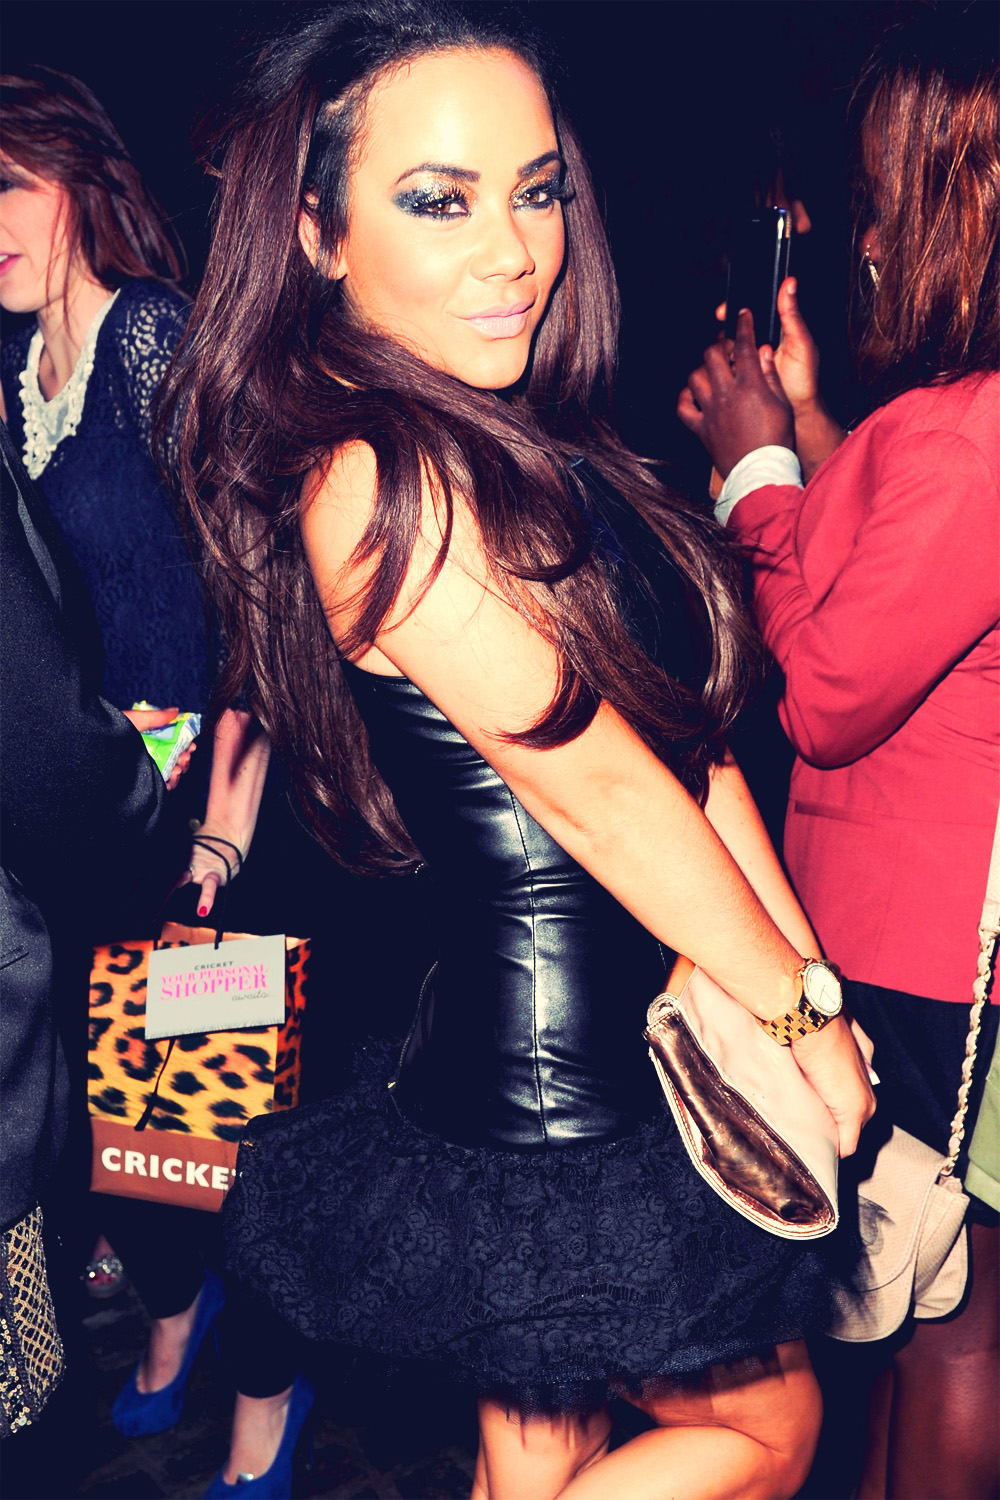 Chelsee Healey at MOBOS after party 3rd Nov 2012